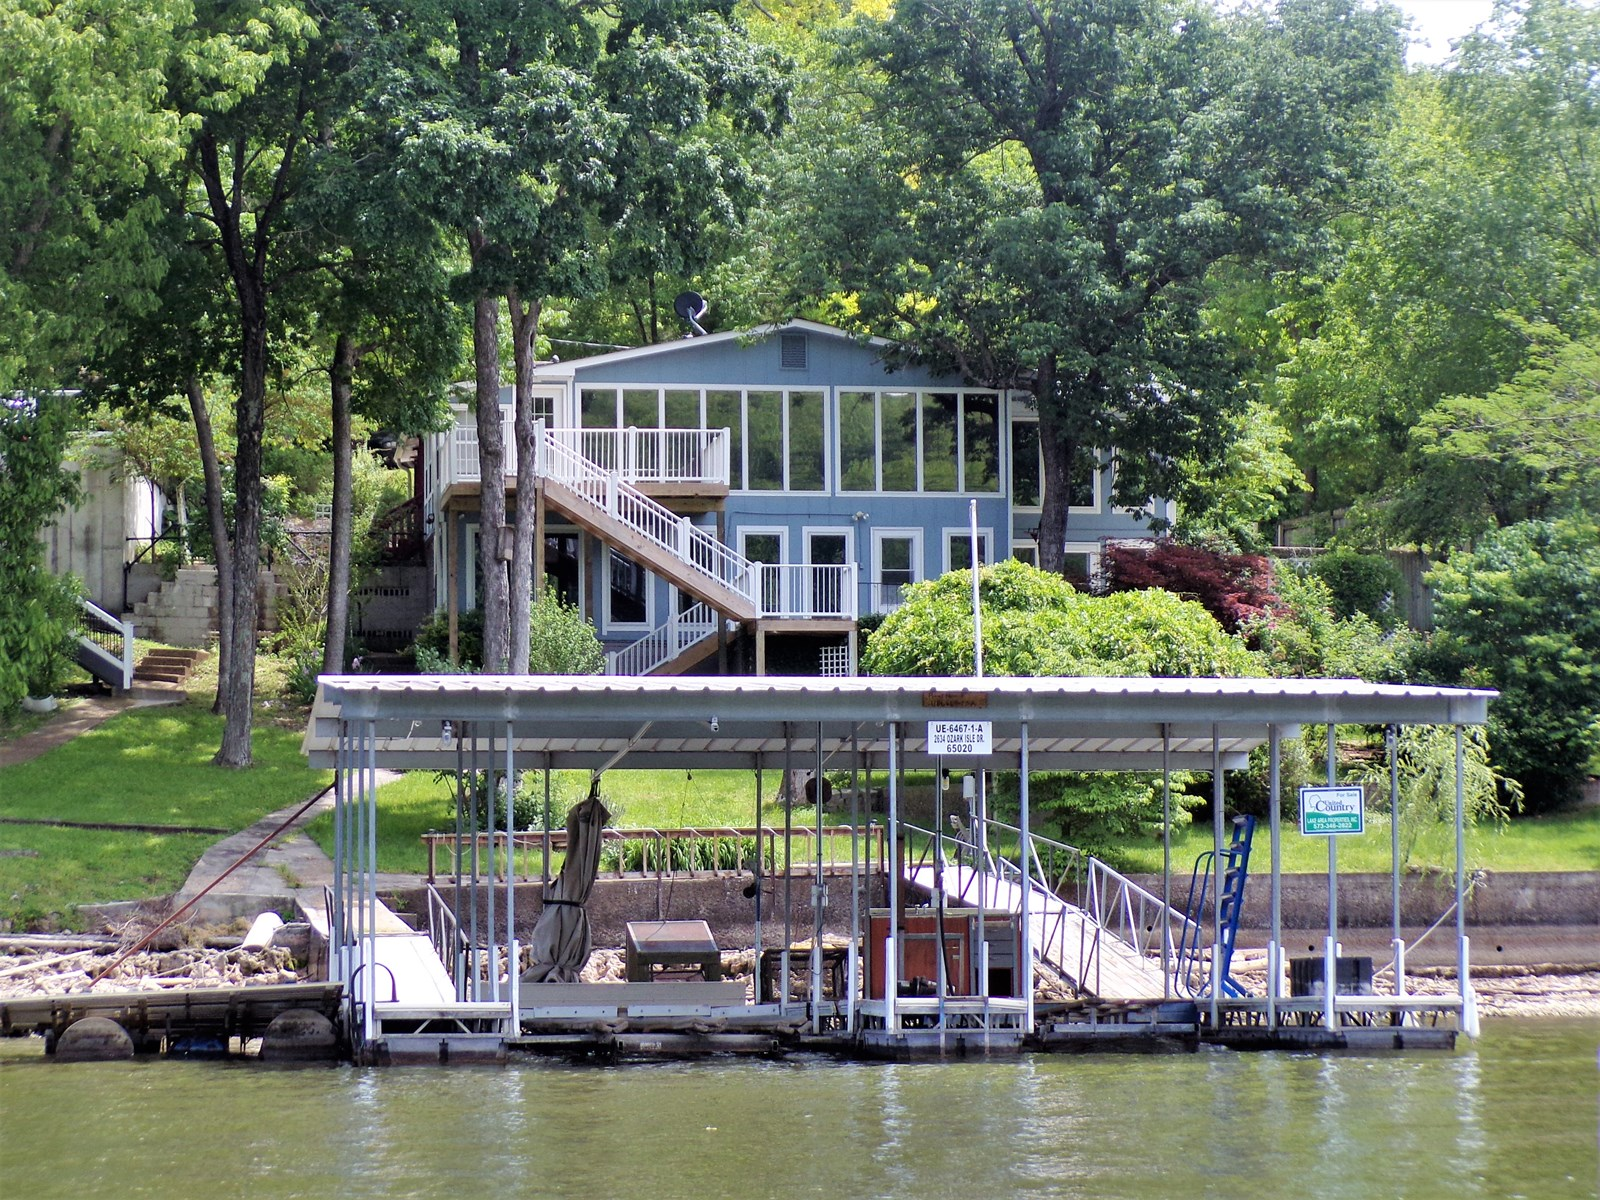 Waterfront home at Lake of the Ozarks